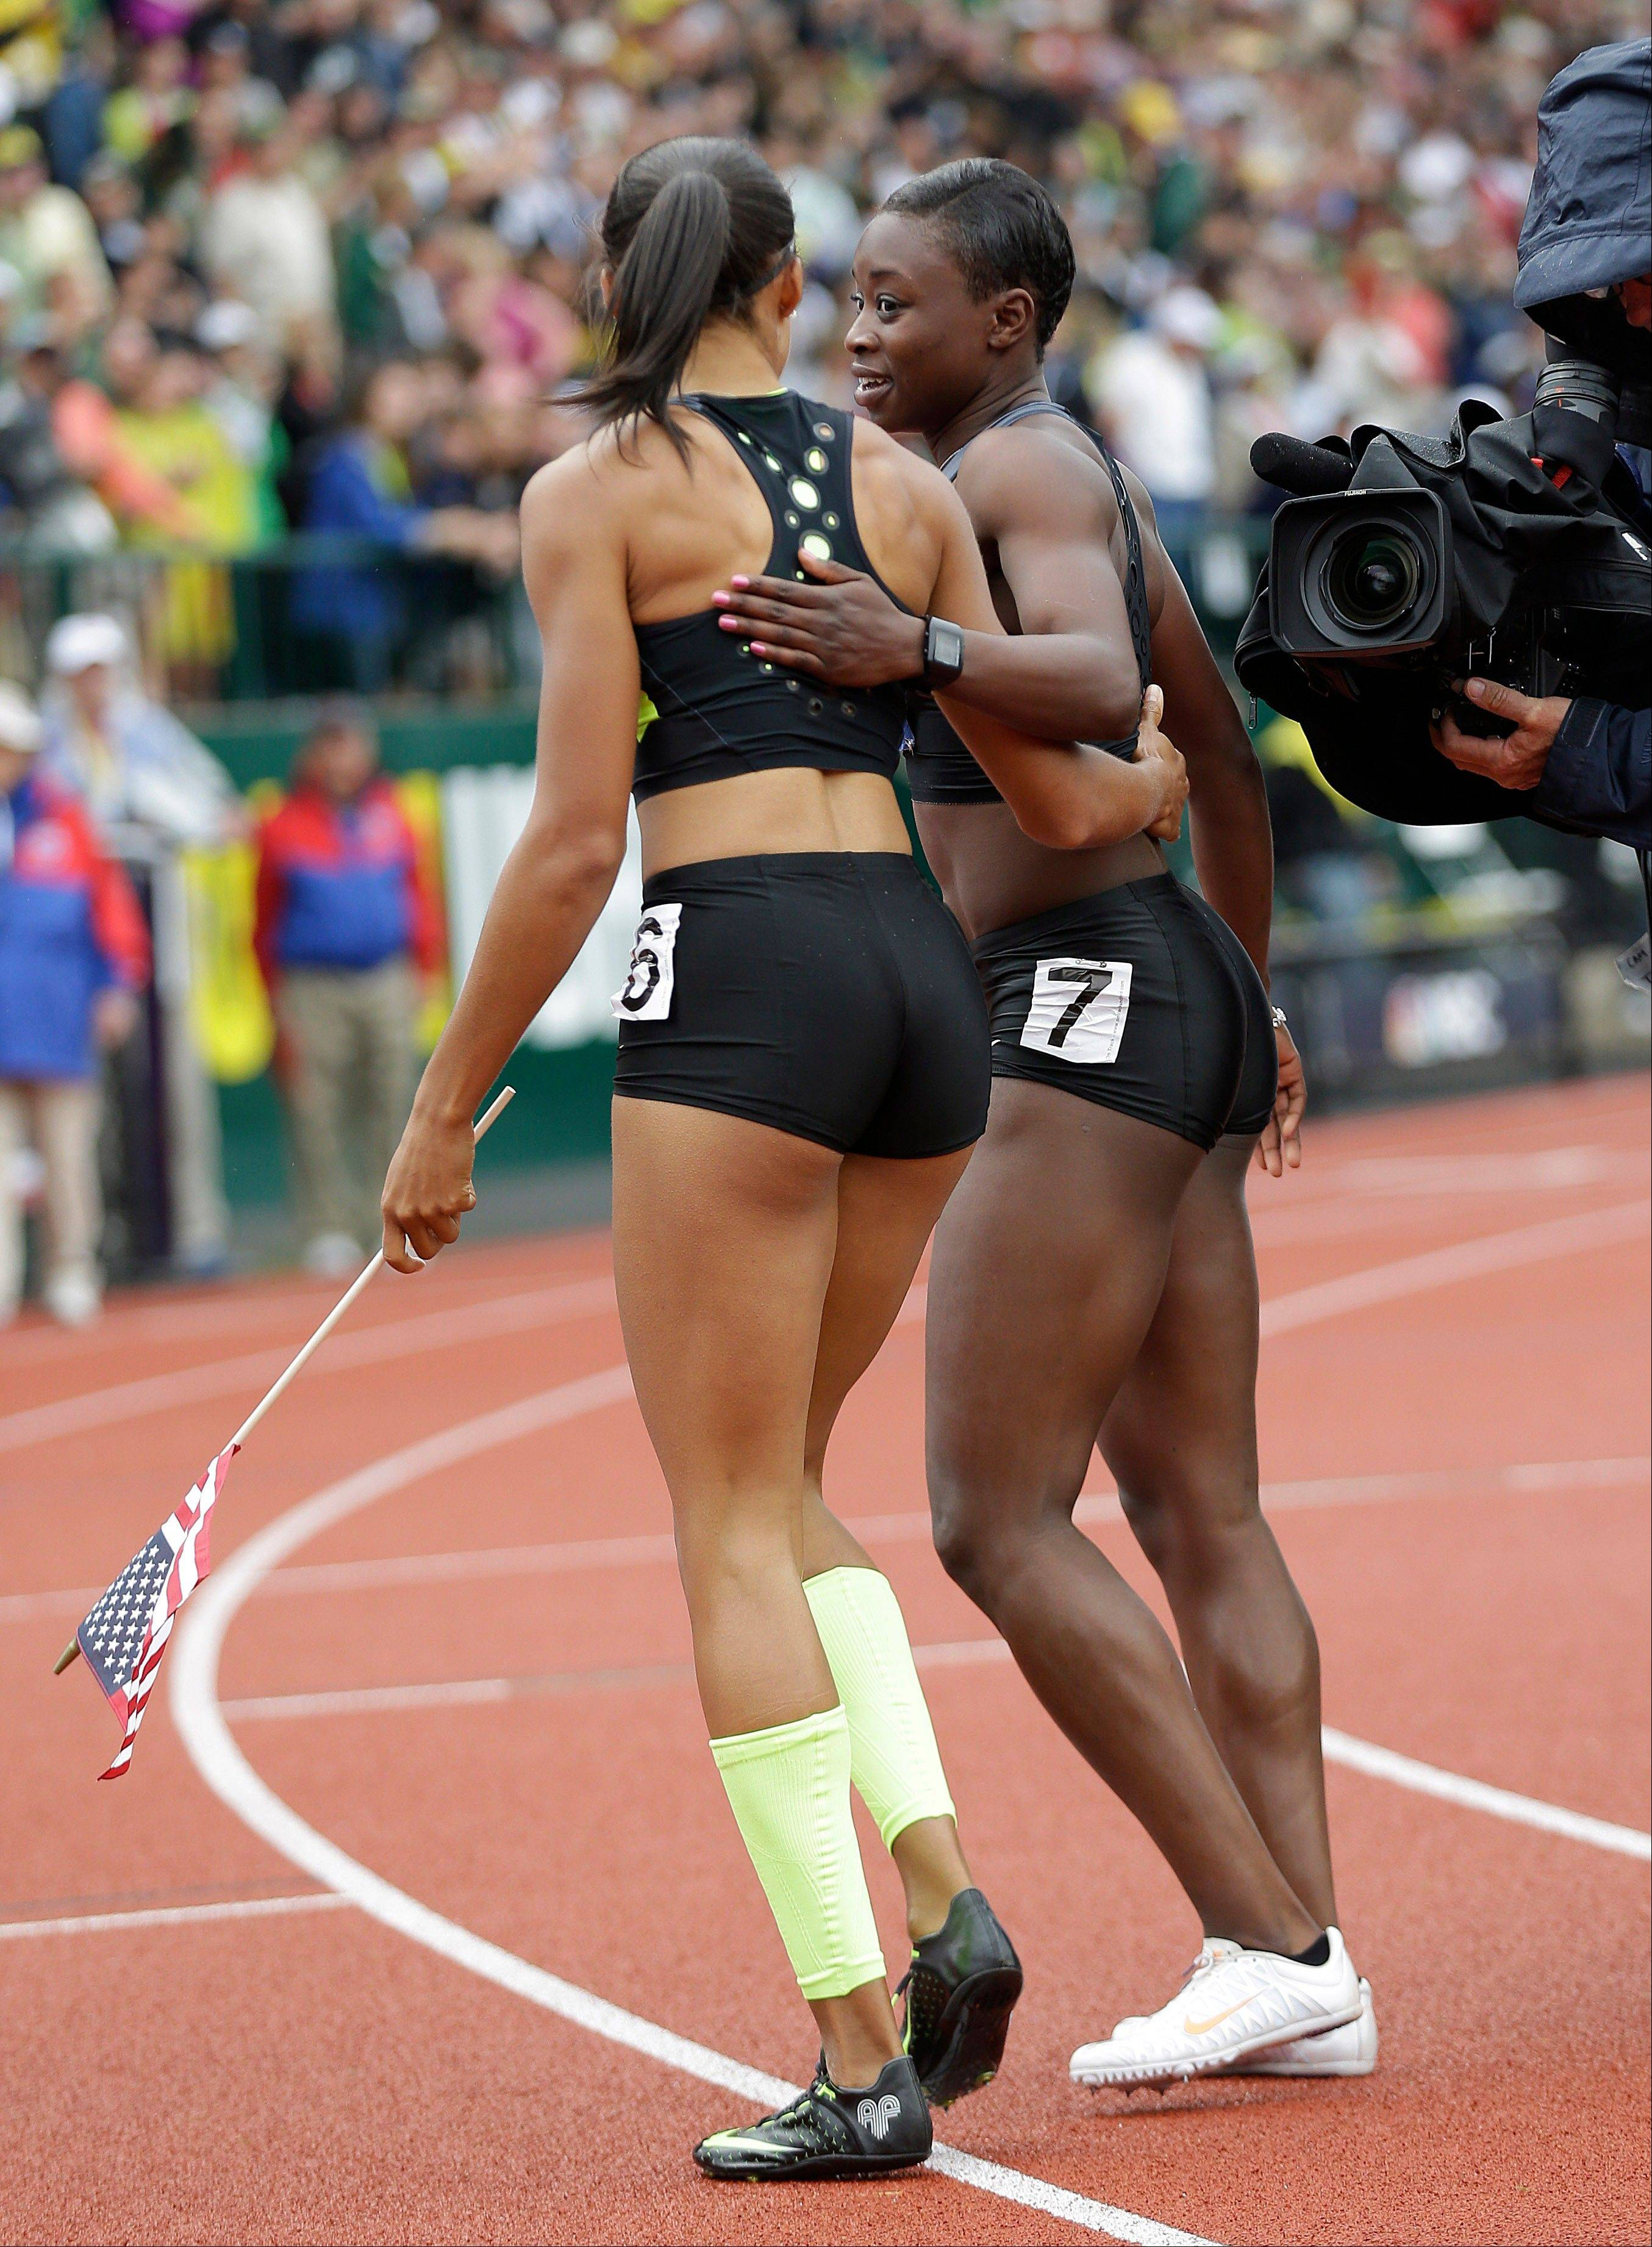 Allyson Felix, left, and Jeneba Tarmoh speak after the finish of the women�s 200 meters at the U.S. Olympic Track and Field Trials Saturday, June 30 in Eugene, Ore. Felix won the 200 but she and Tarmoh tied for third place in the 100 meters. And Tarmoh backed out of the runoff scheduled for Monday.